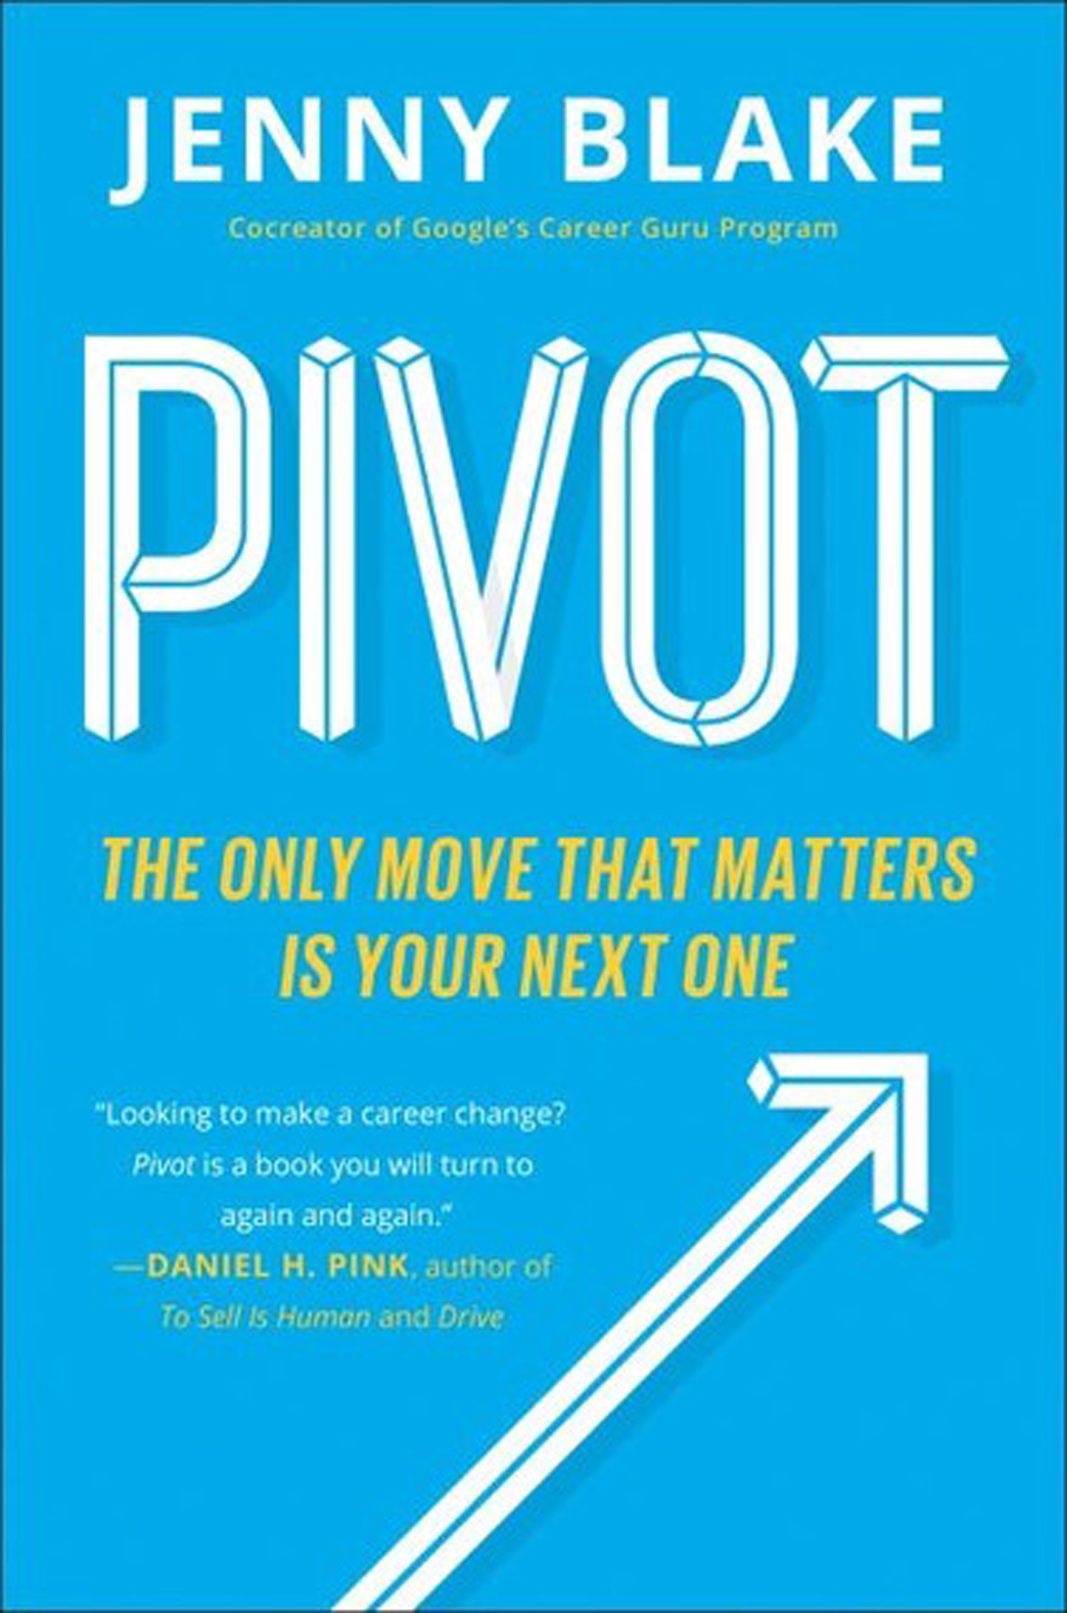 """<p><strong><em>Pivot</em></strong></p> <p>By Jenny Blake</p> <p>If you're stuck in a career rut and want to make some changes in 2017, <em><a href=""""http://www.refinery29.uk/your-next-career-move-pivot"""" rel=""""nofollow noopener"""" target=""""_blank"""" data-ylk=""""slk:Pivot"""" class=""""link rapid-noclick-resp"""">Pivot</a></em> is for you. Written by careers strategist and the co-creator of Google's Career Guru Program, Jenny Blake, the book removes the feelings of confusion and panic that often come with trying something new. She teaches you how to move from one career to another in our rapidly evolving economy. Refreshingly, Blake's philosophy is all about building on your existing strengths rather than the need to become a whole new person. Result!</p>"""